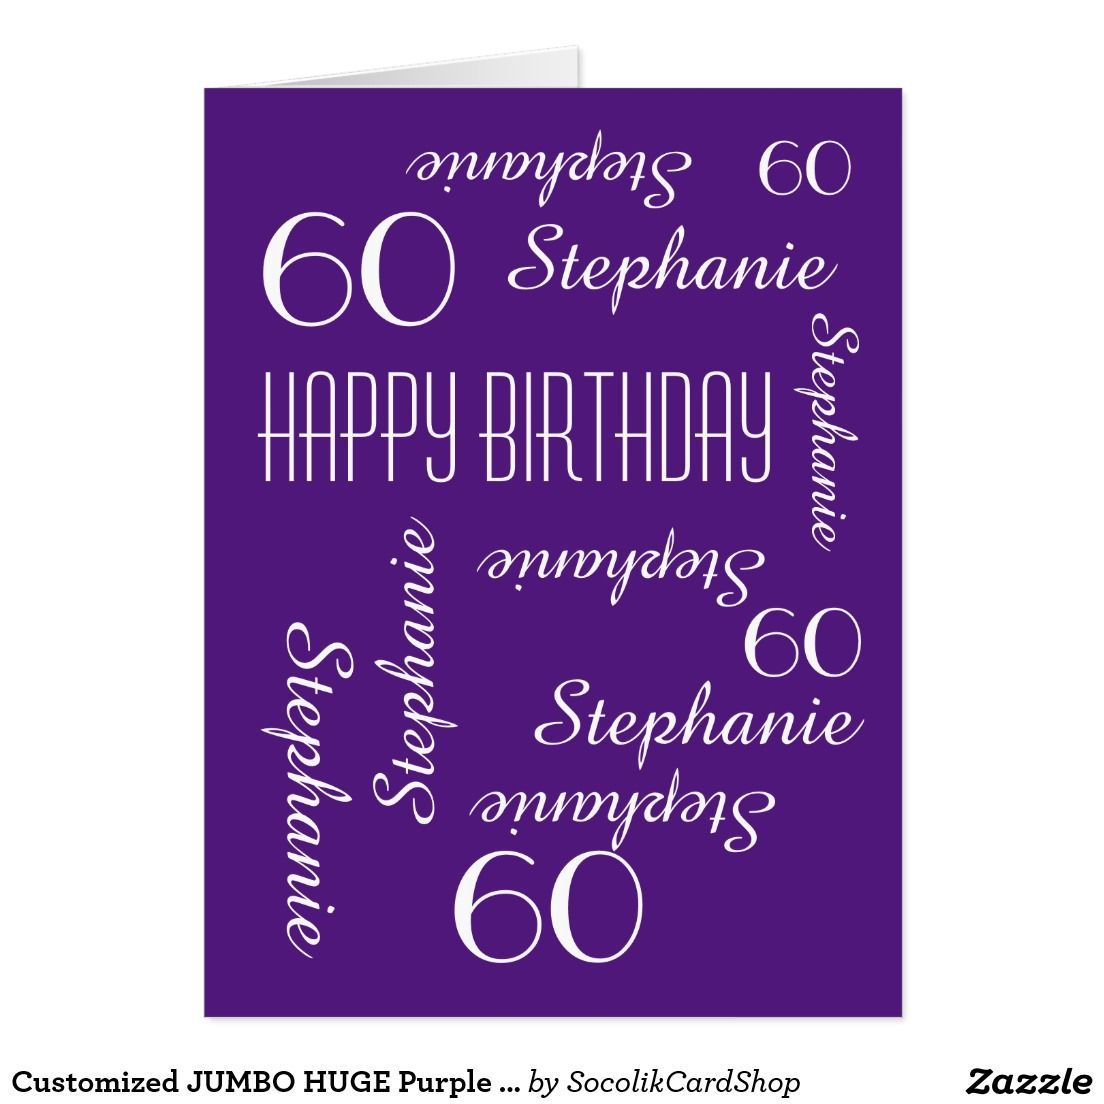 Customized jumbo huge purple birthday card any age what a customized jumbo huge purple birthday card any age what a wonderful personalized birthday greeting card for any age on the cover your text repeats in m4hsunfo Gallery